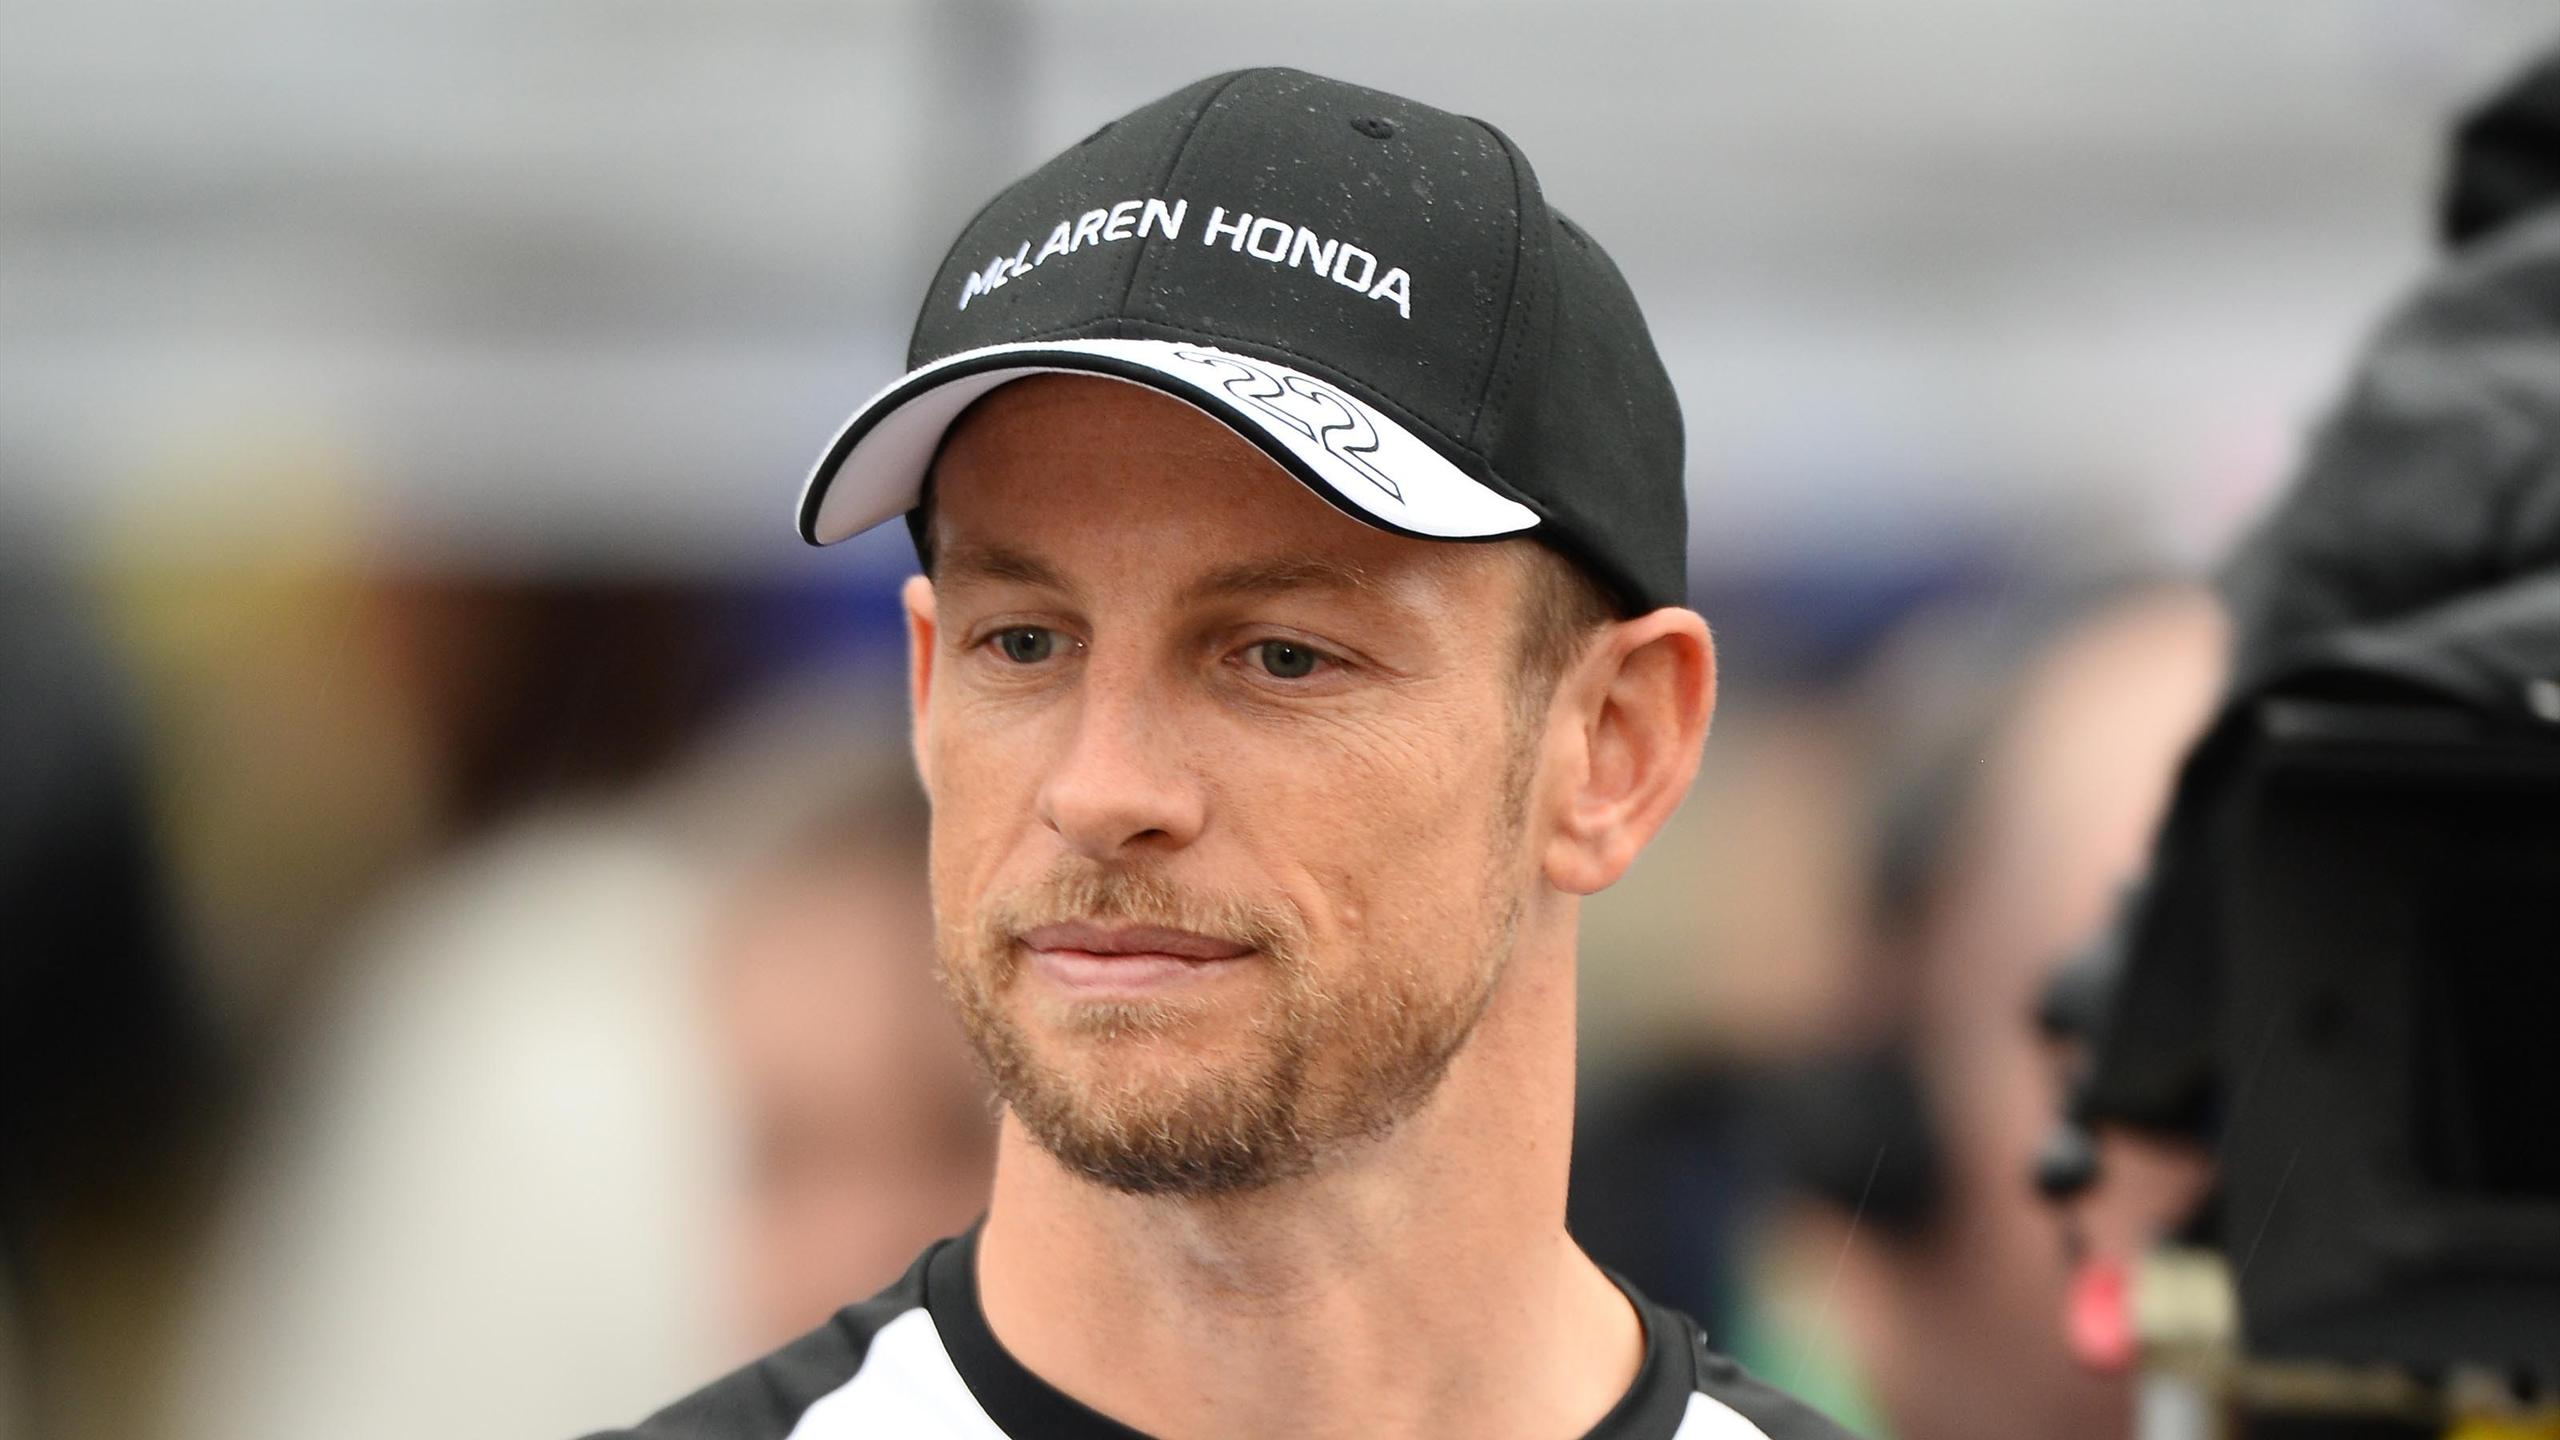 Jenson Button (McLaren) au Grand Prix du Japon 2015